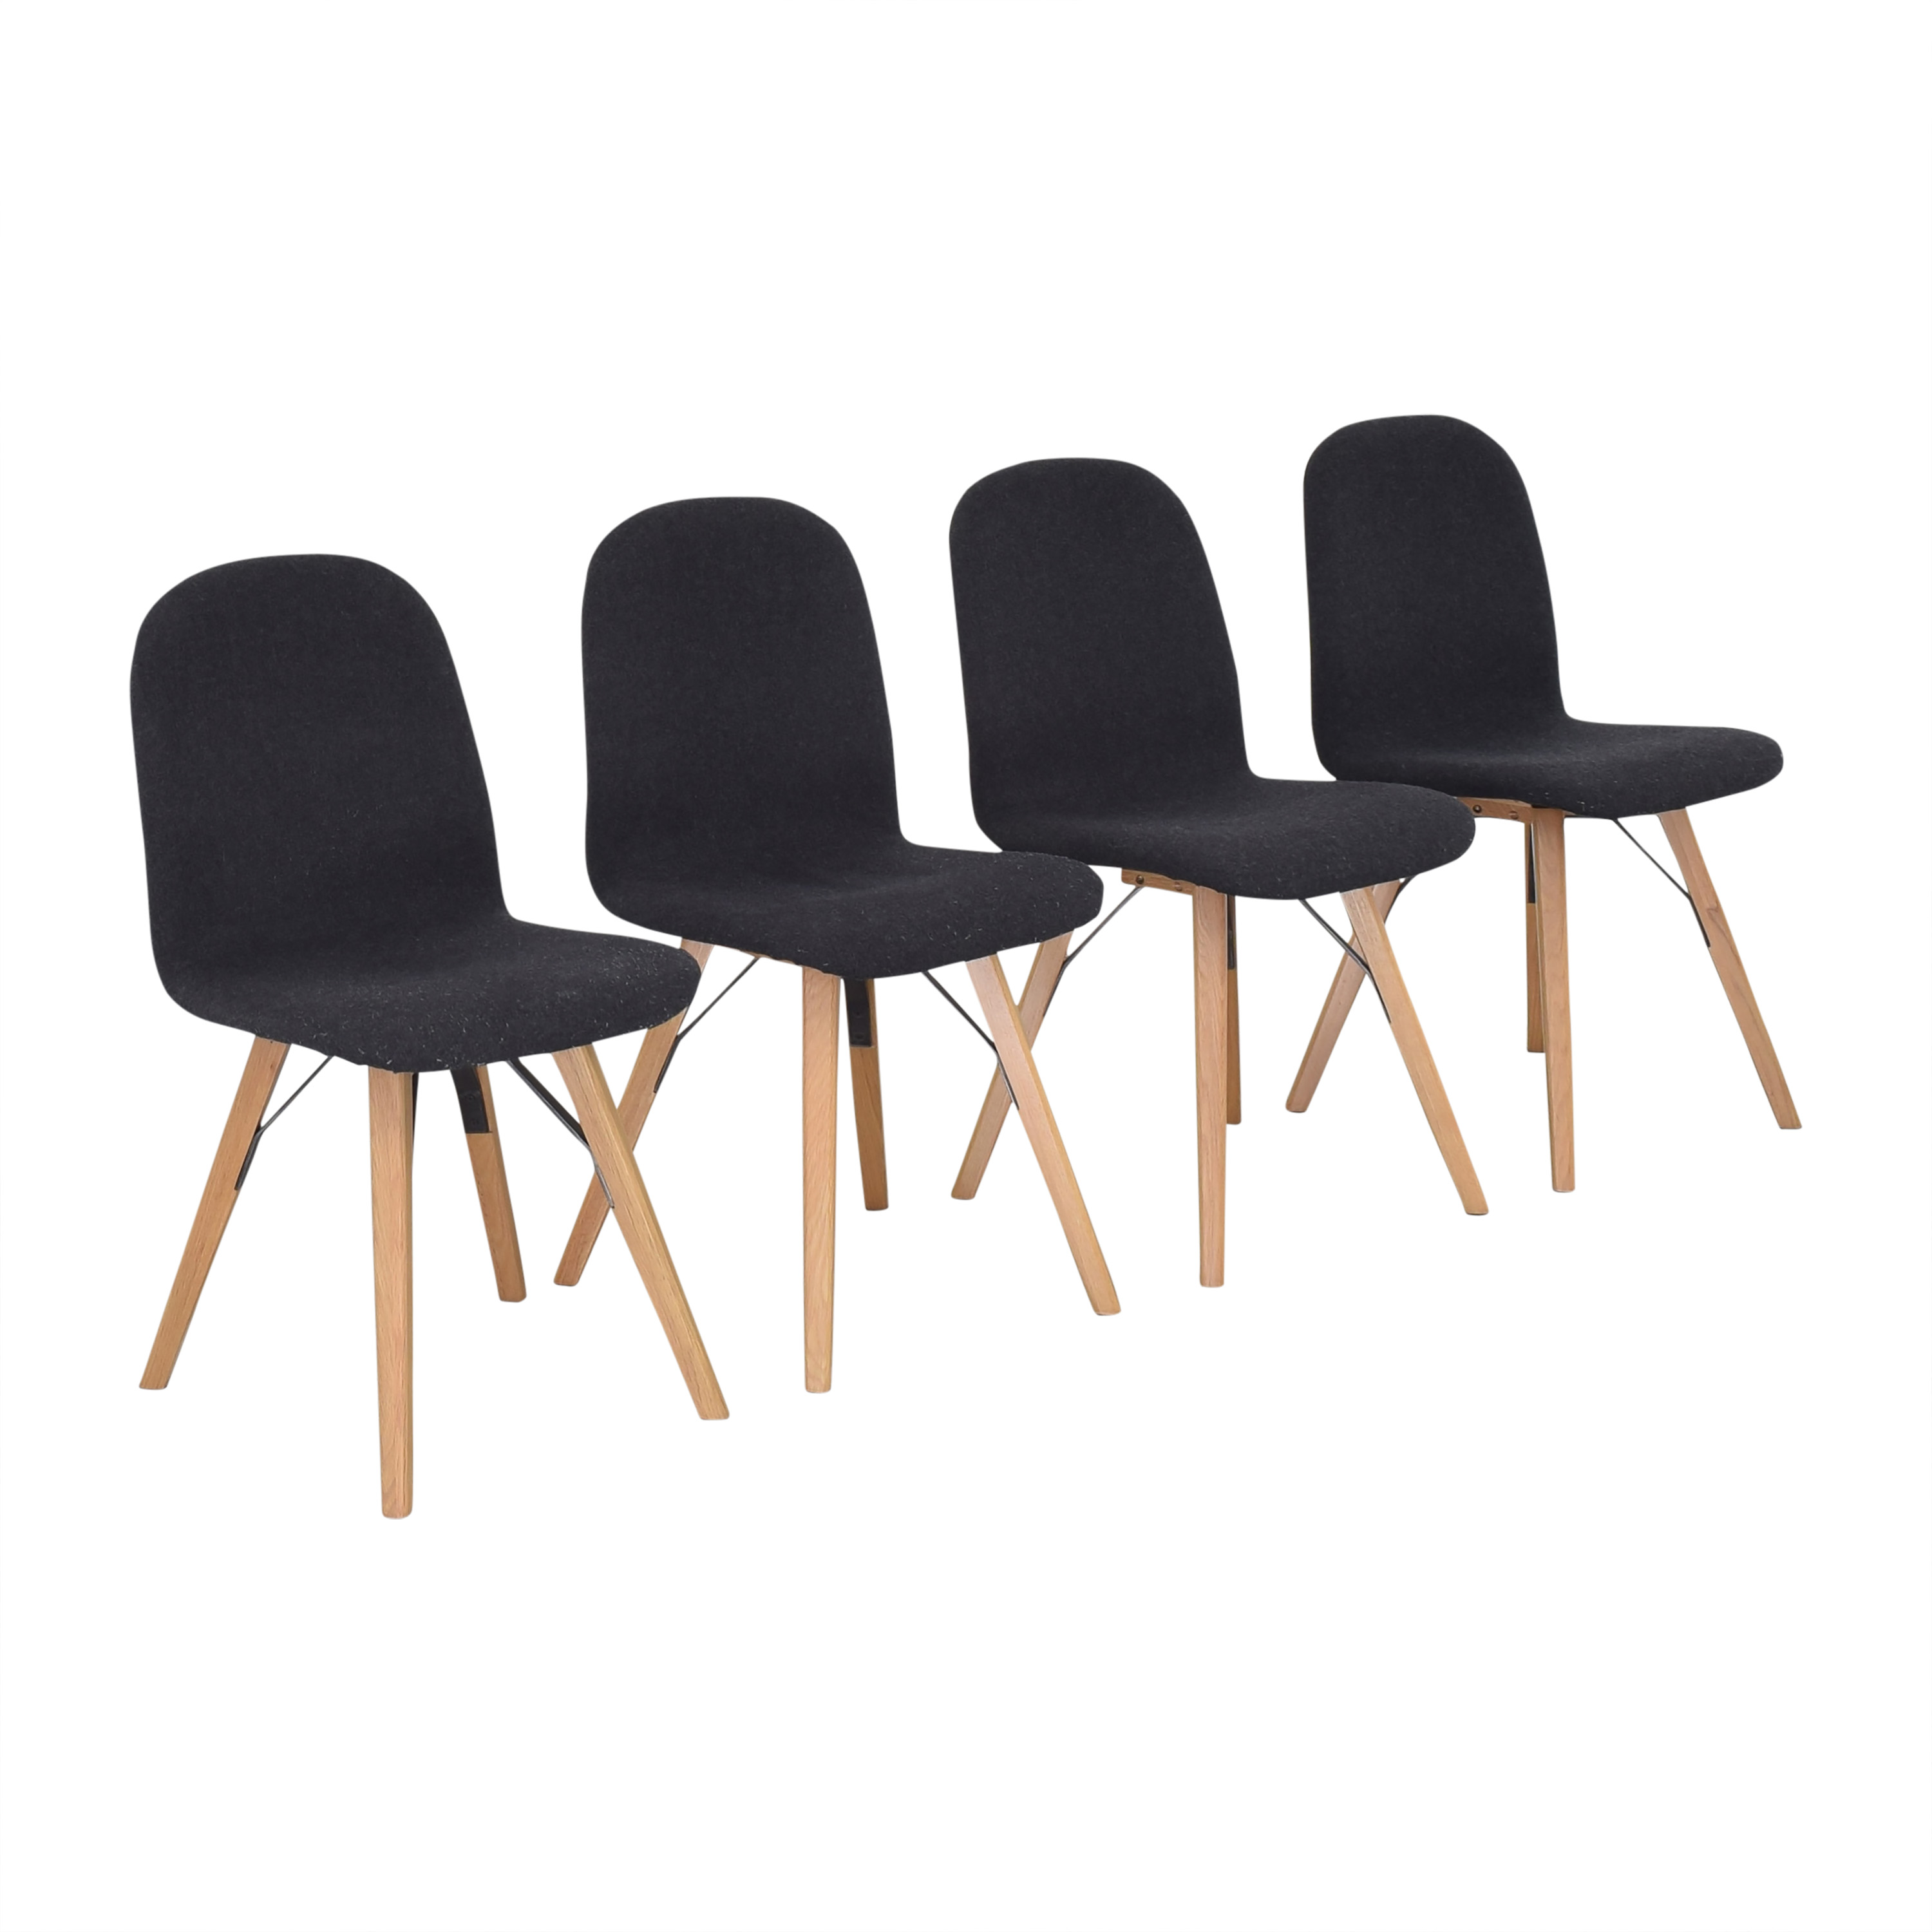 Article Article Mecana Dining Chairs dimensions